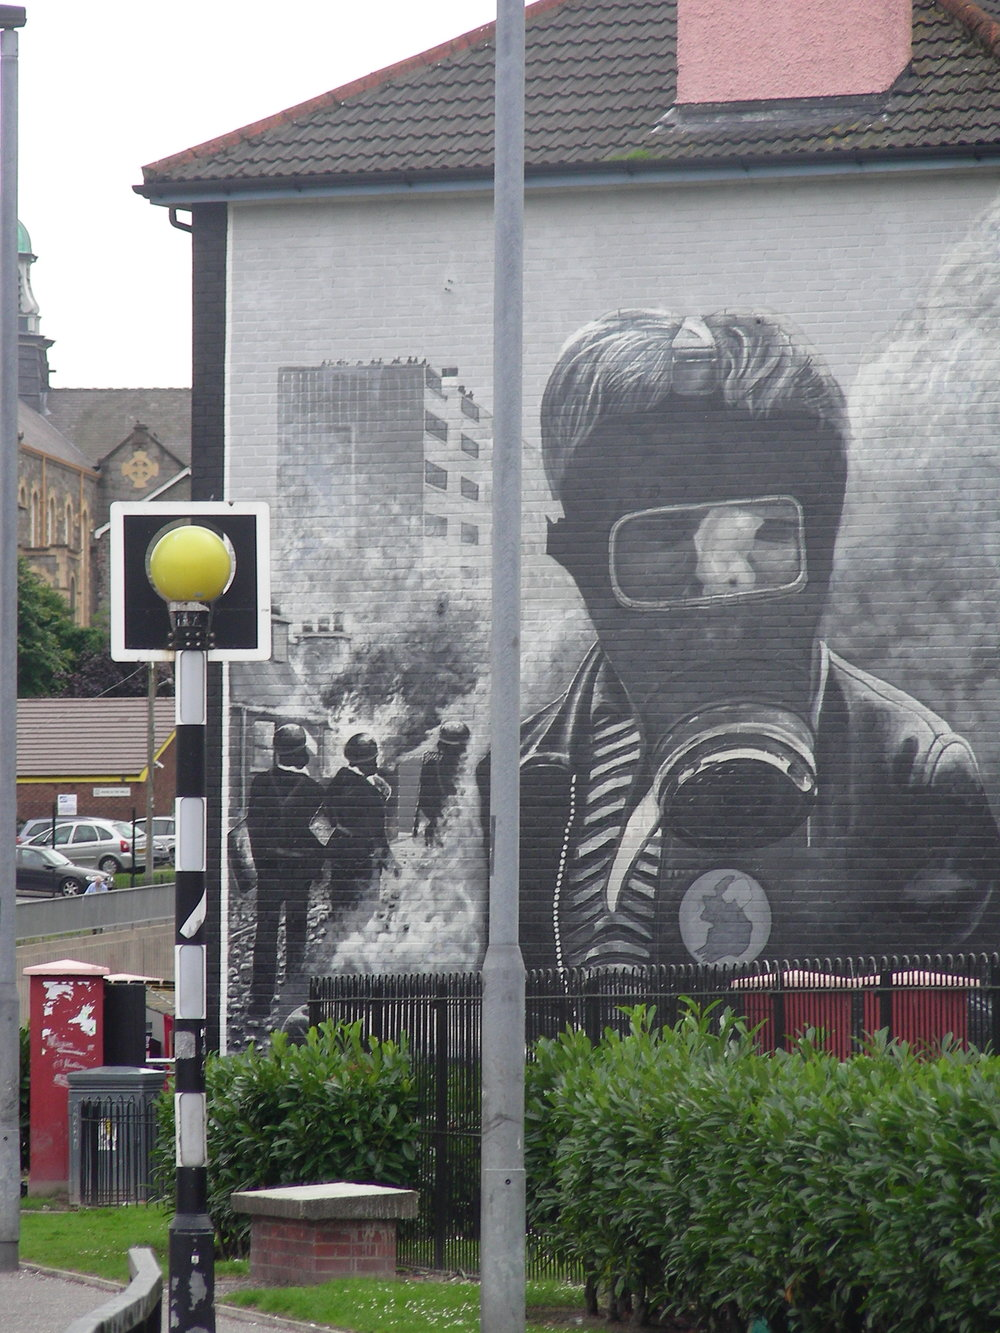 Rainyday (Petrol Bomber), Derry/Northern Ireland, 2008.